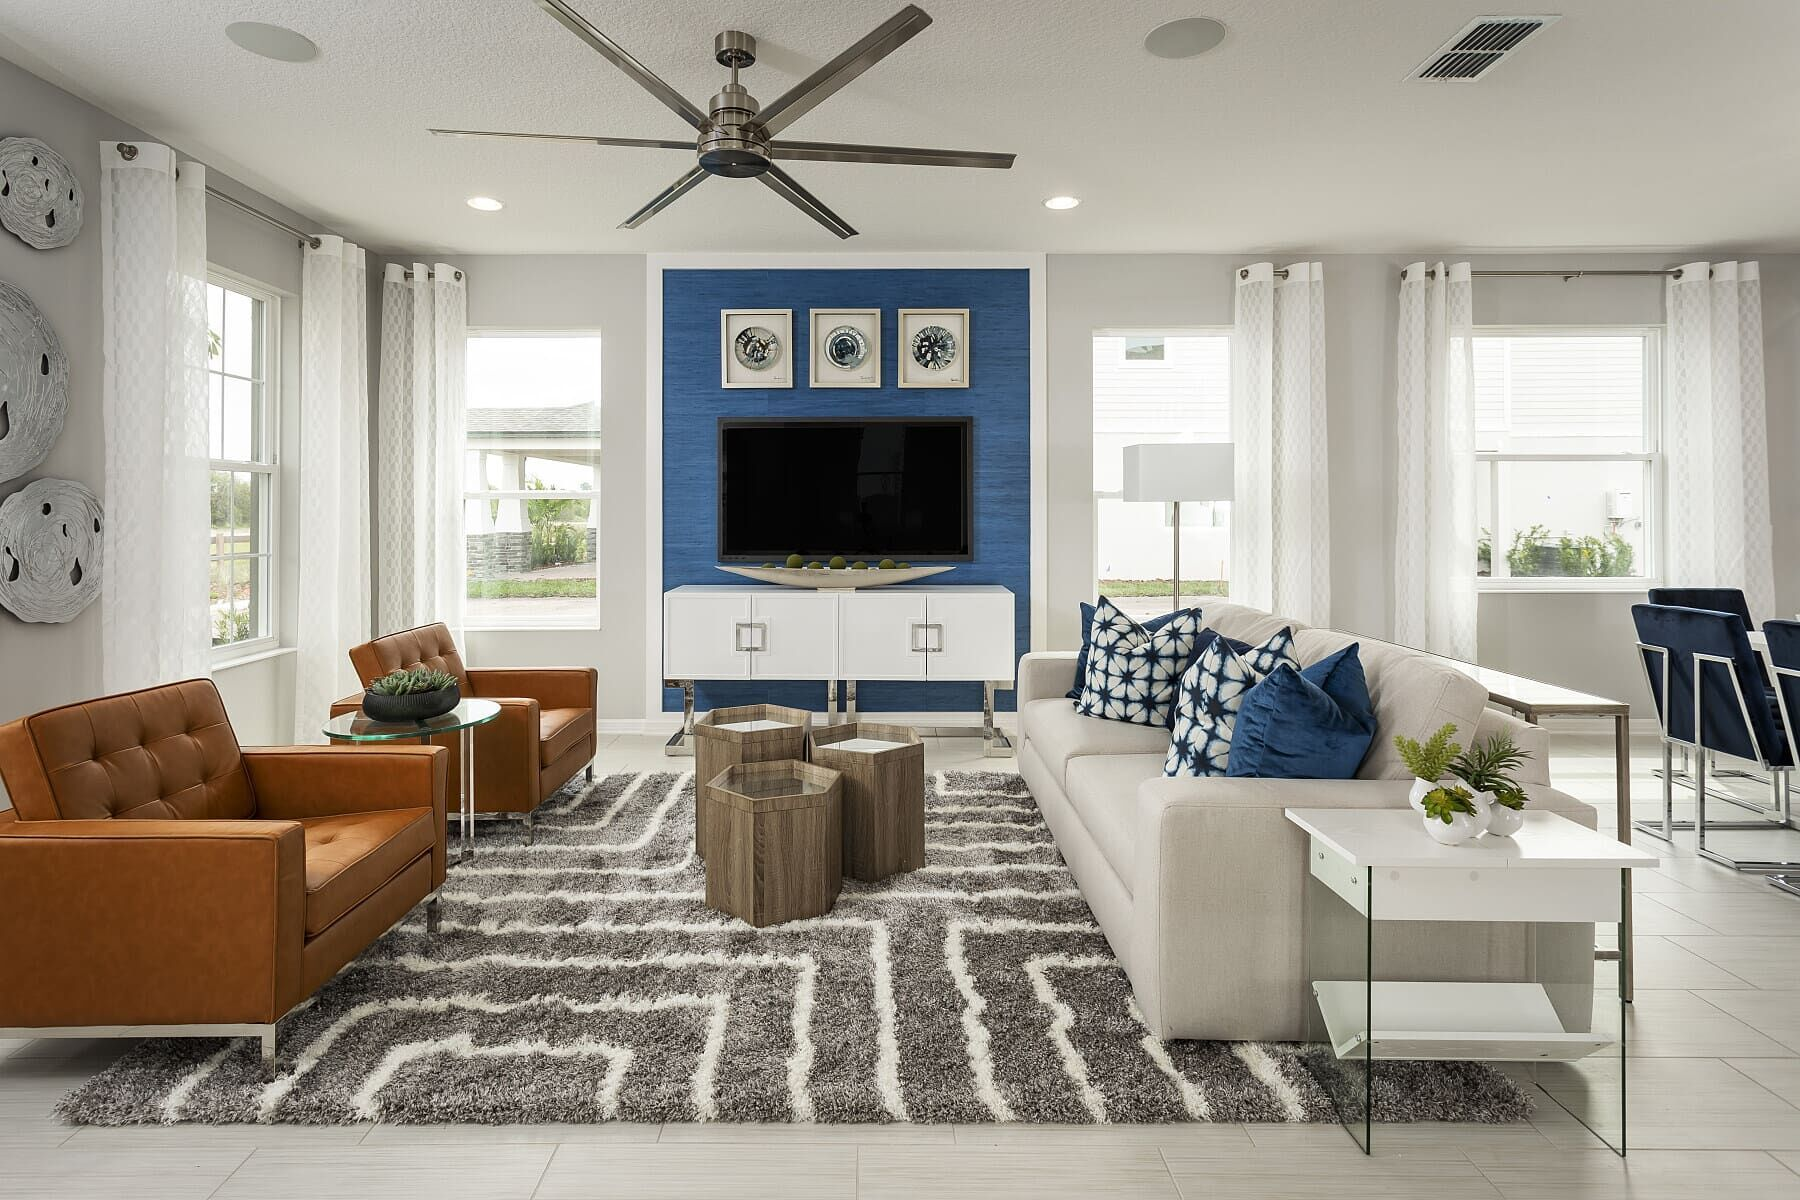 Living Area featured in the Sebring By M/I Homes in Orlando, FL